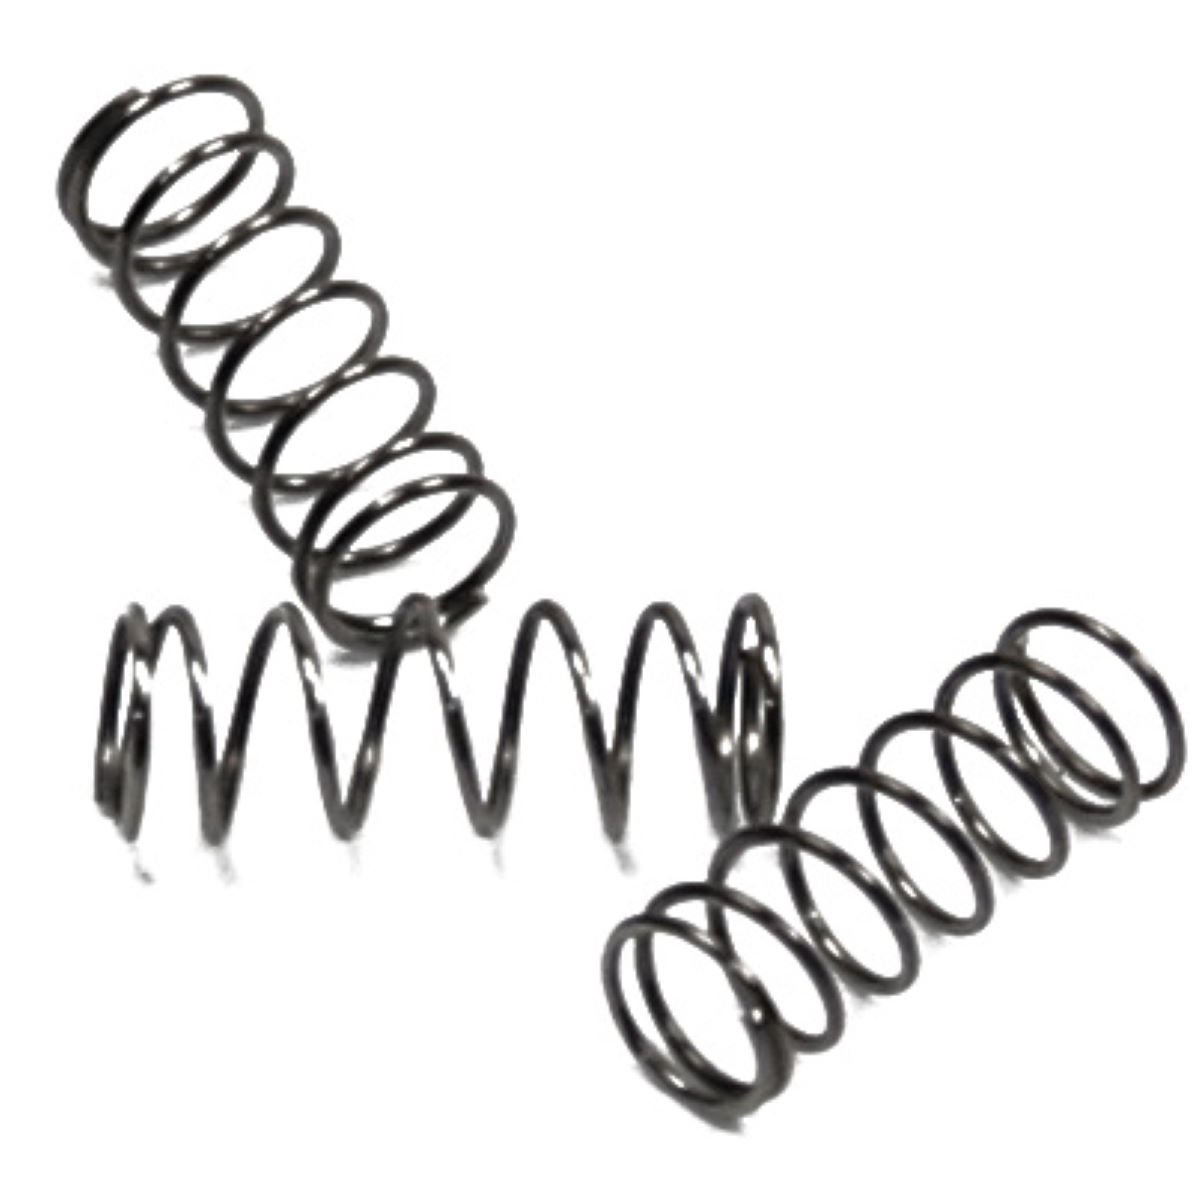 Hope Bulb/xc Pack Of 3 Freehub Pawl Springs - One Size Grey